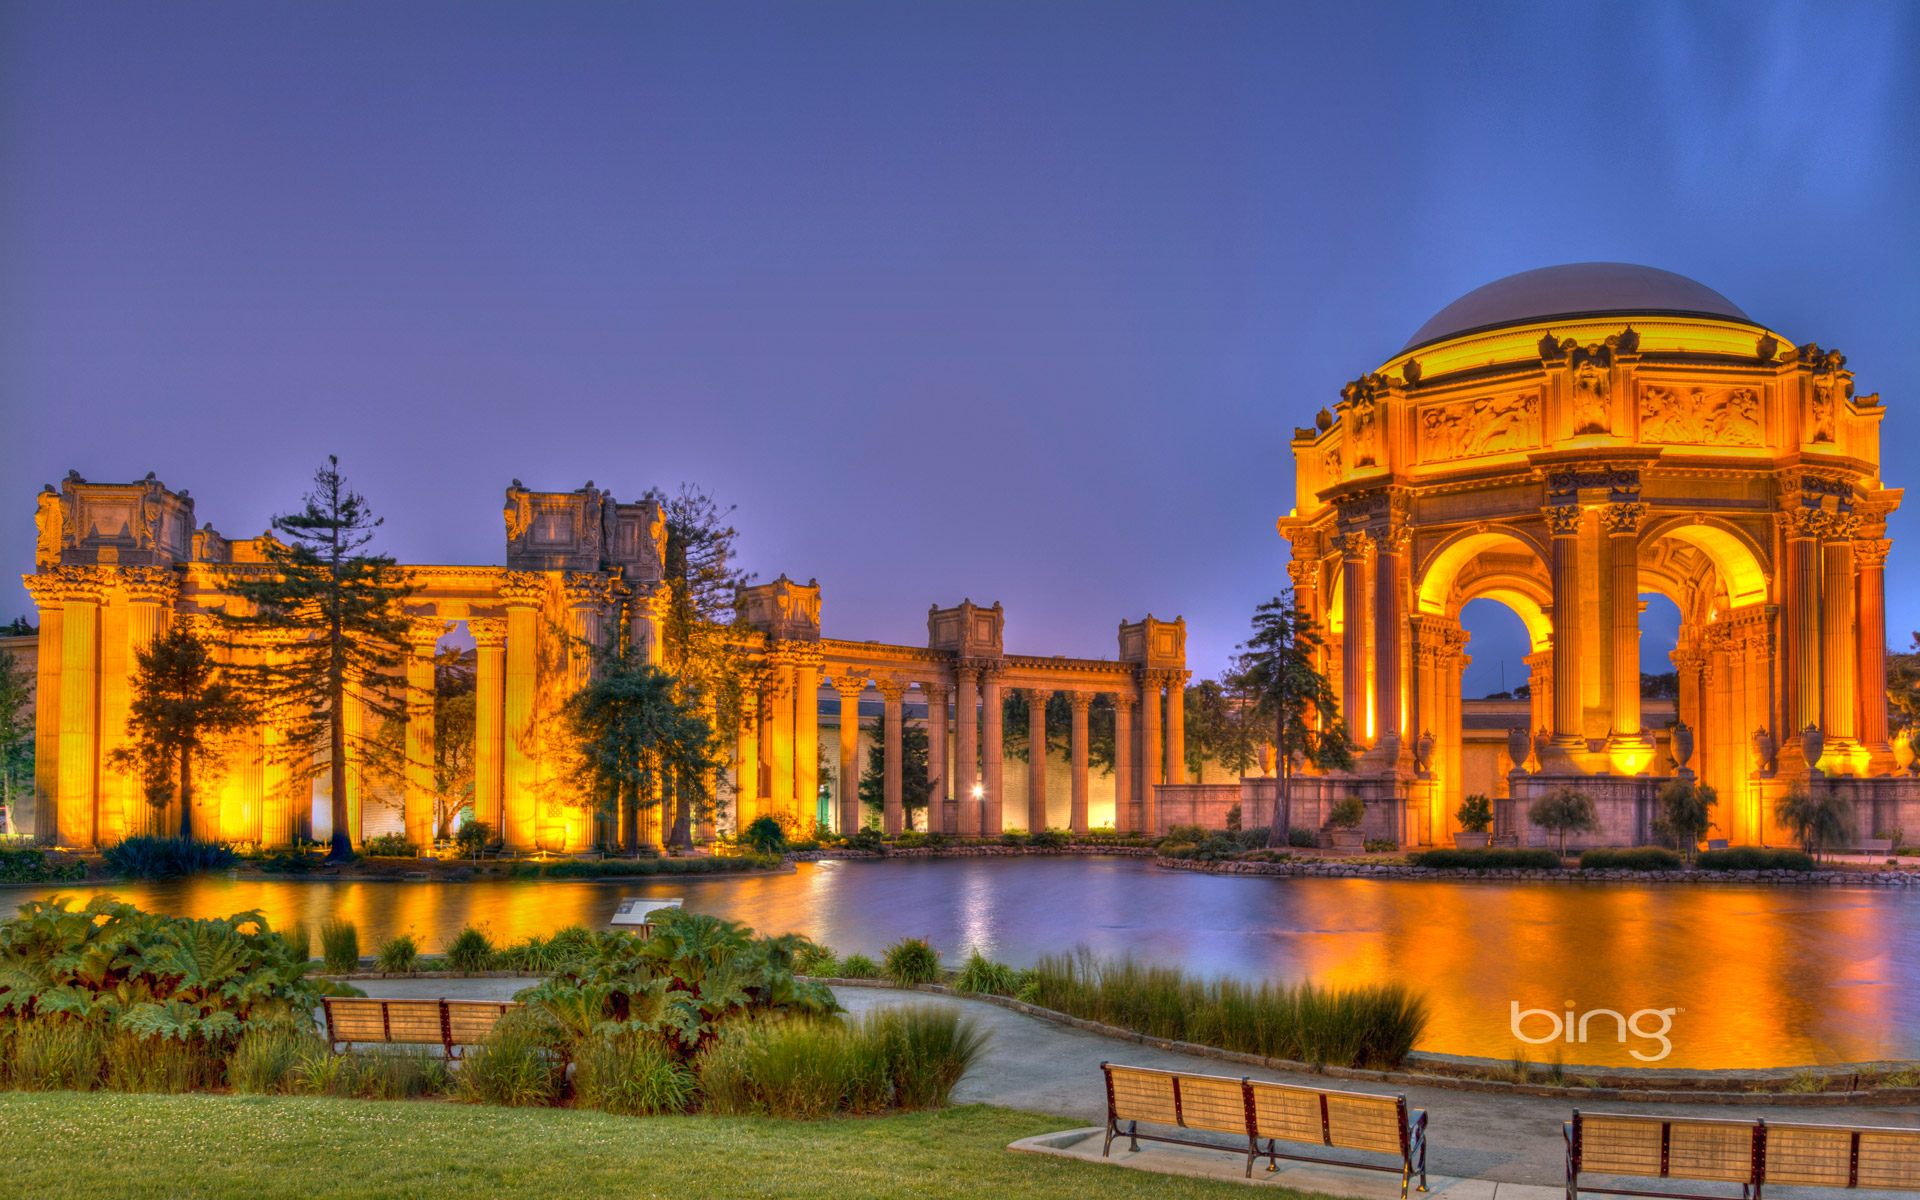 Palace of Fine Arts in the Marina District of San Francisco, California